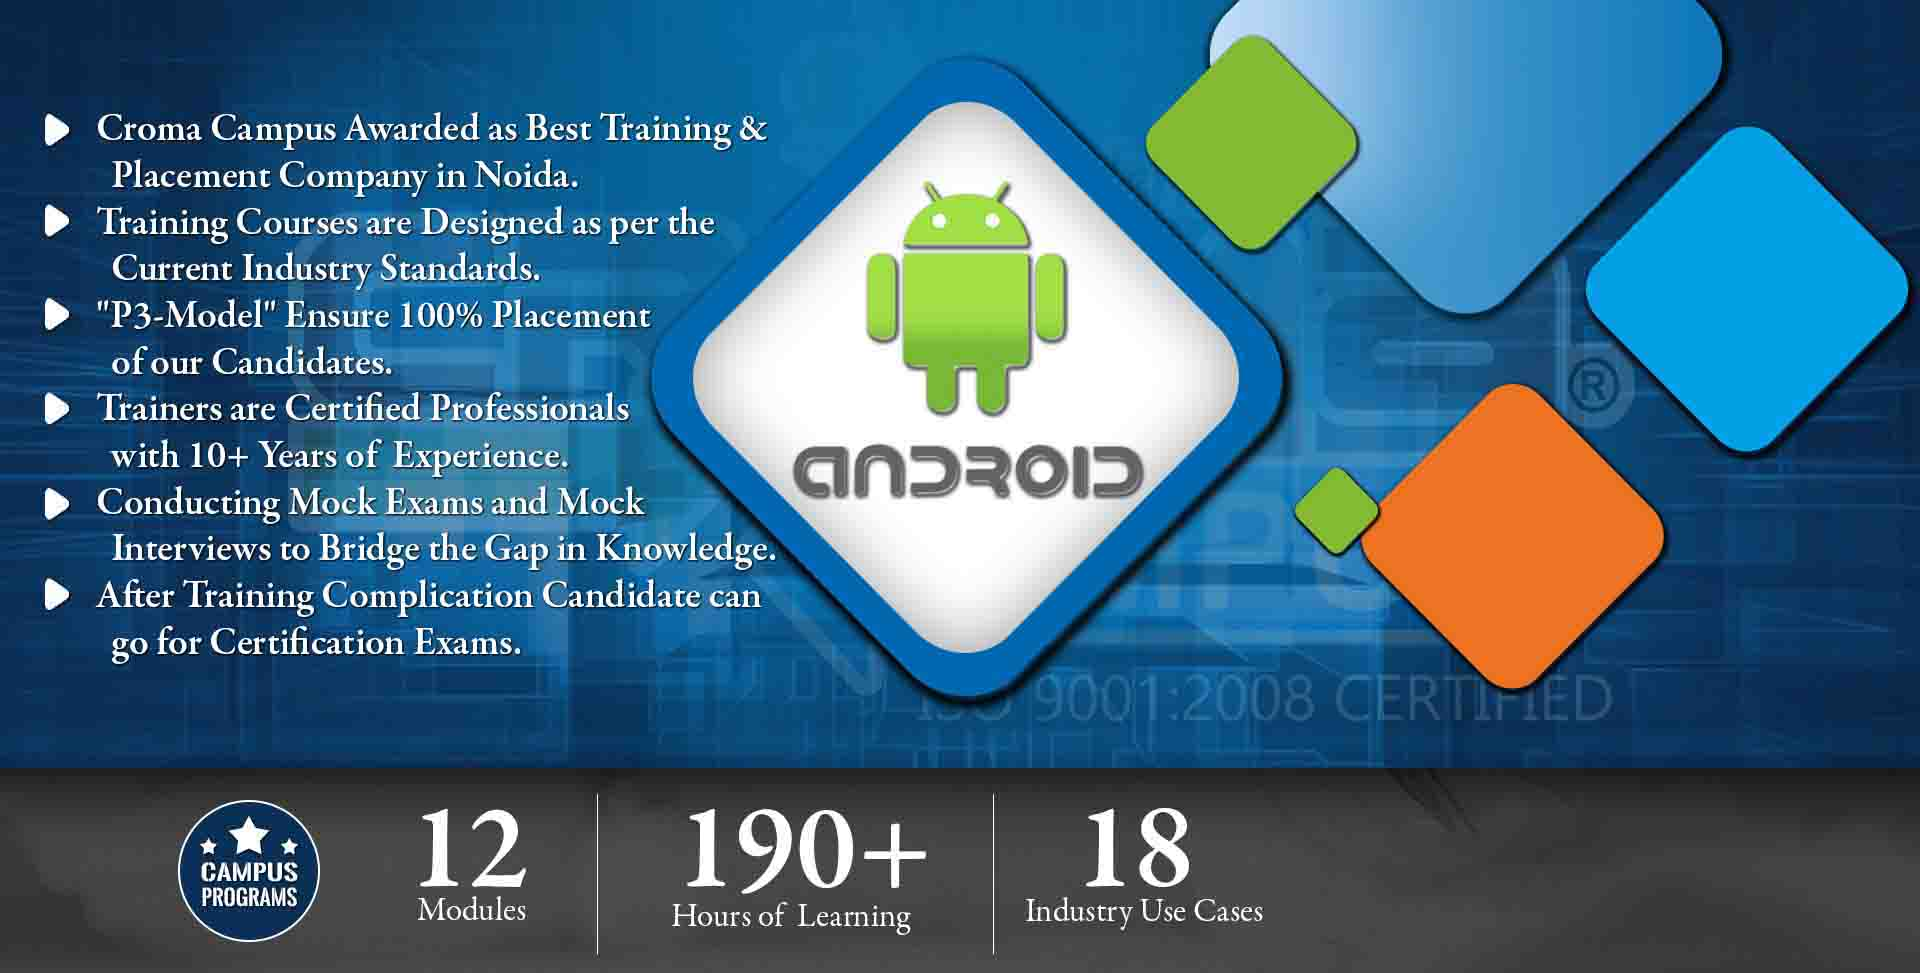 Android Training in Noida- Croma Campus